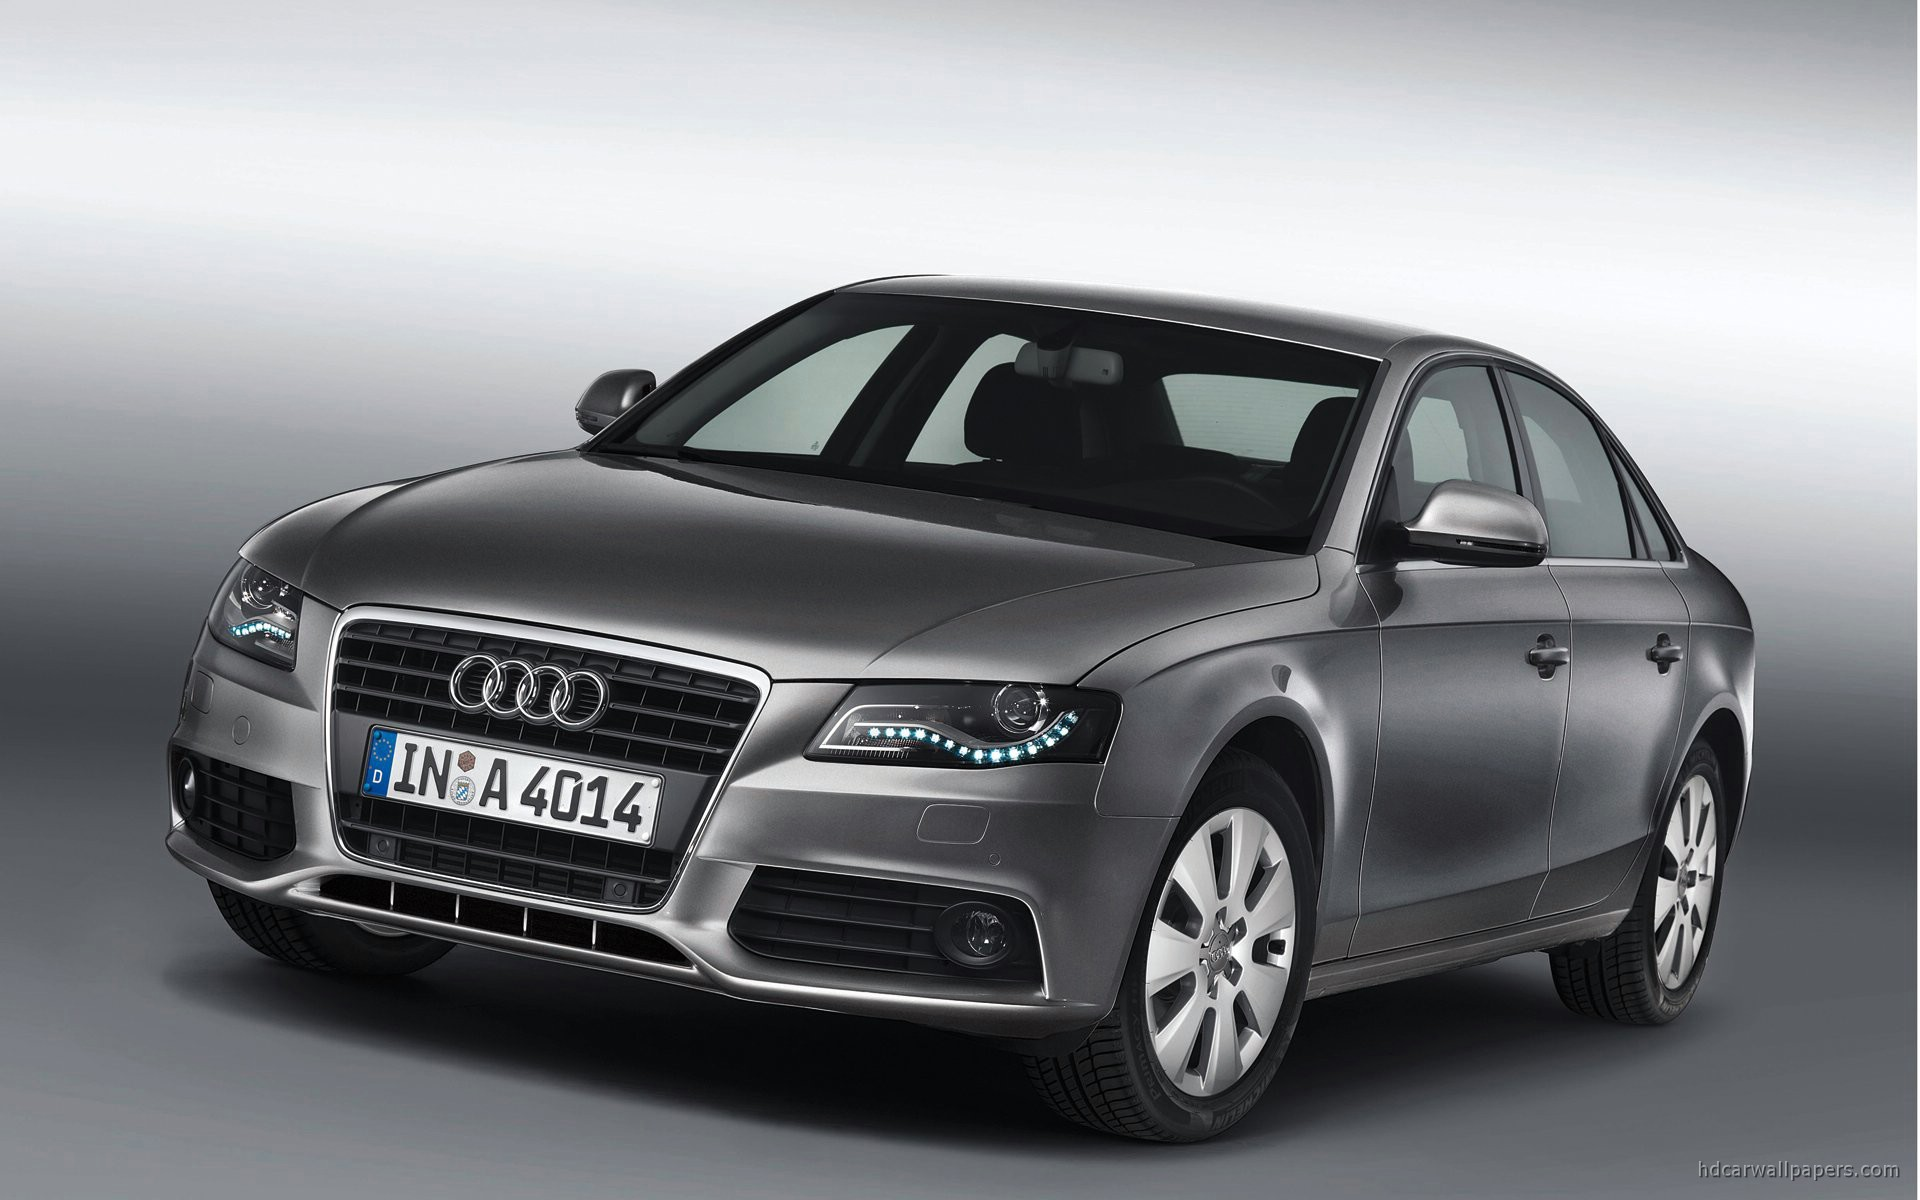 New Audi A4 Car Price In India Car Wallpapers